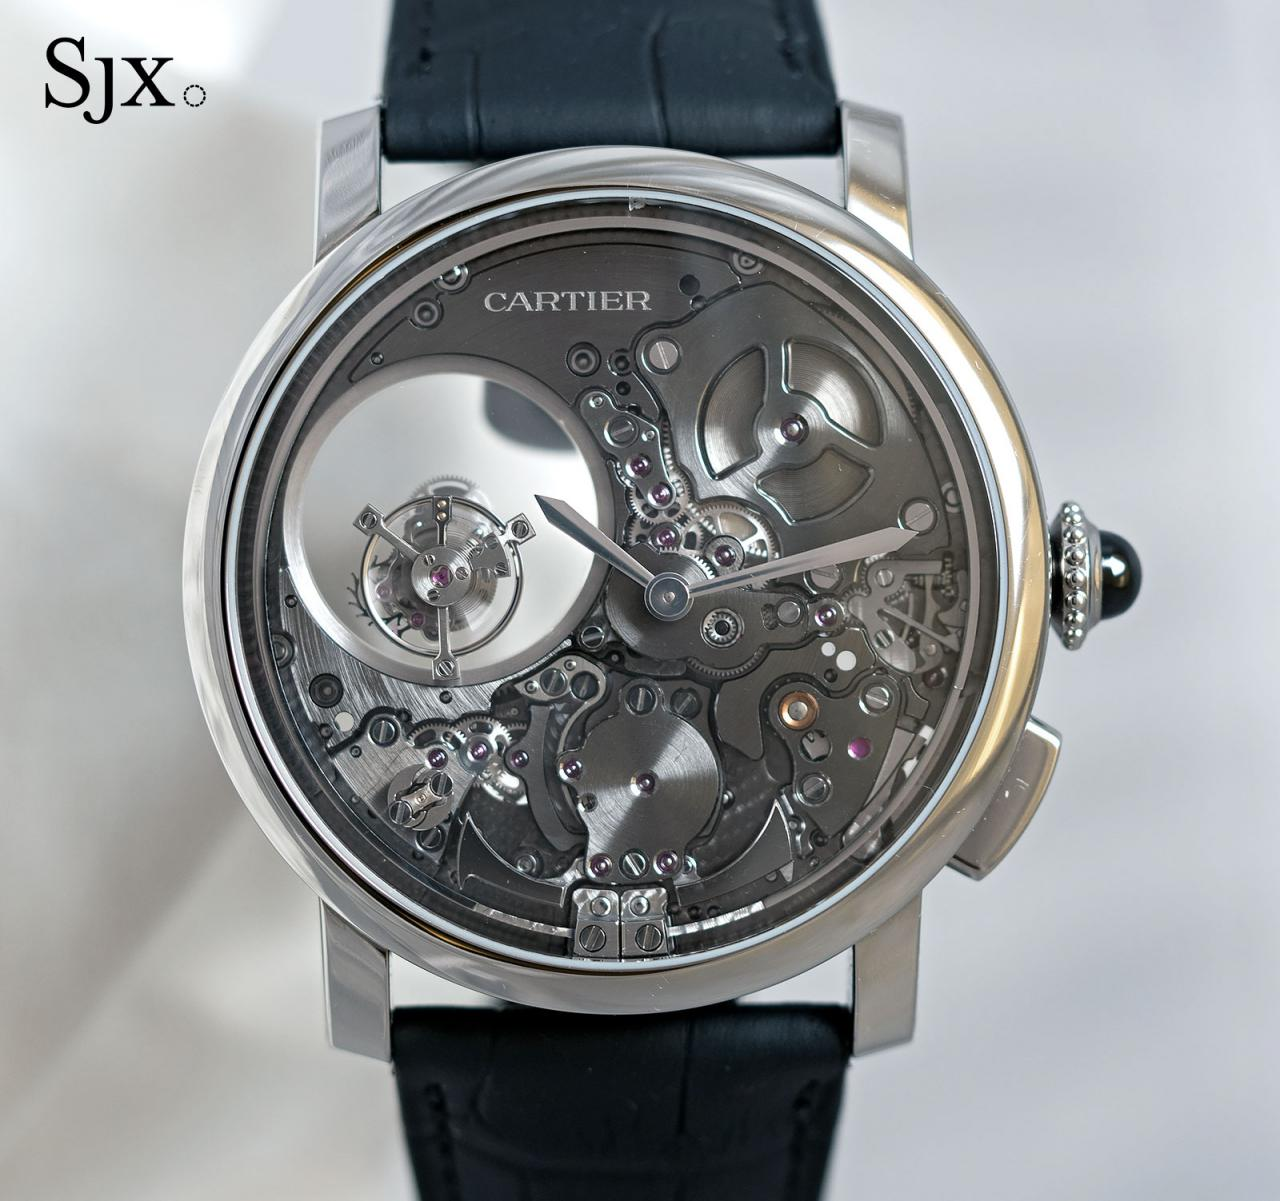 Cartier Rotonde Repeater Mysterious Double Tourbillon 1